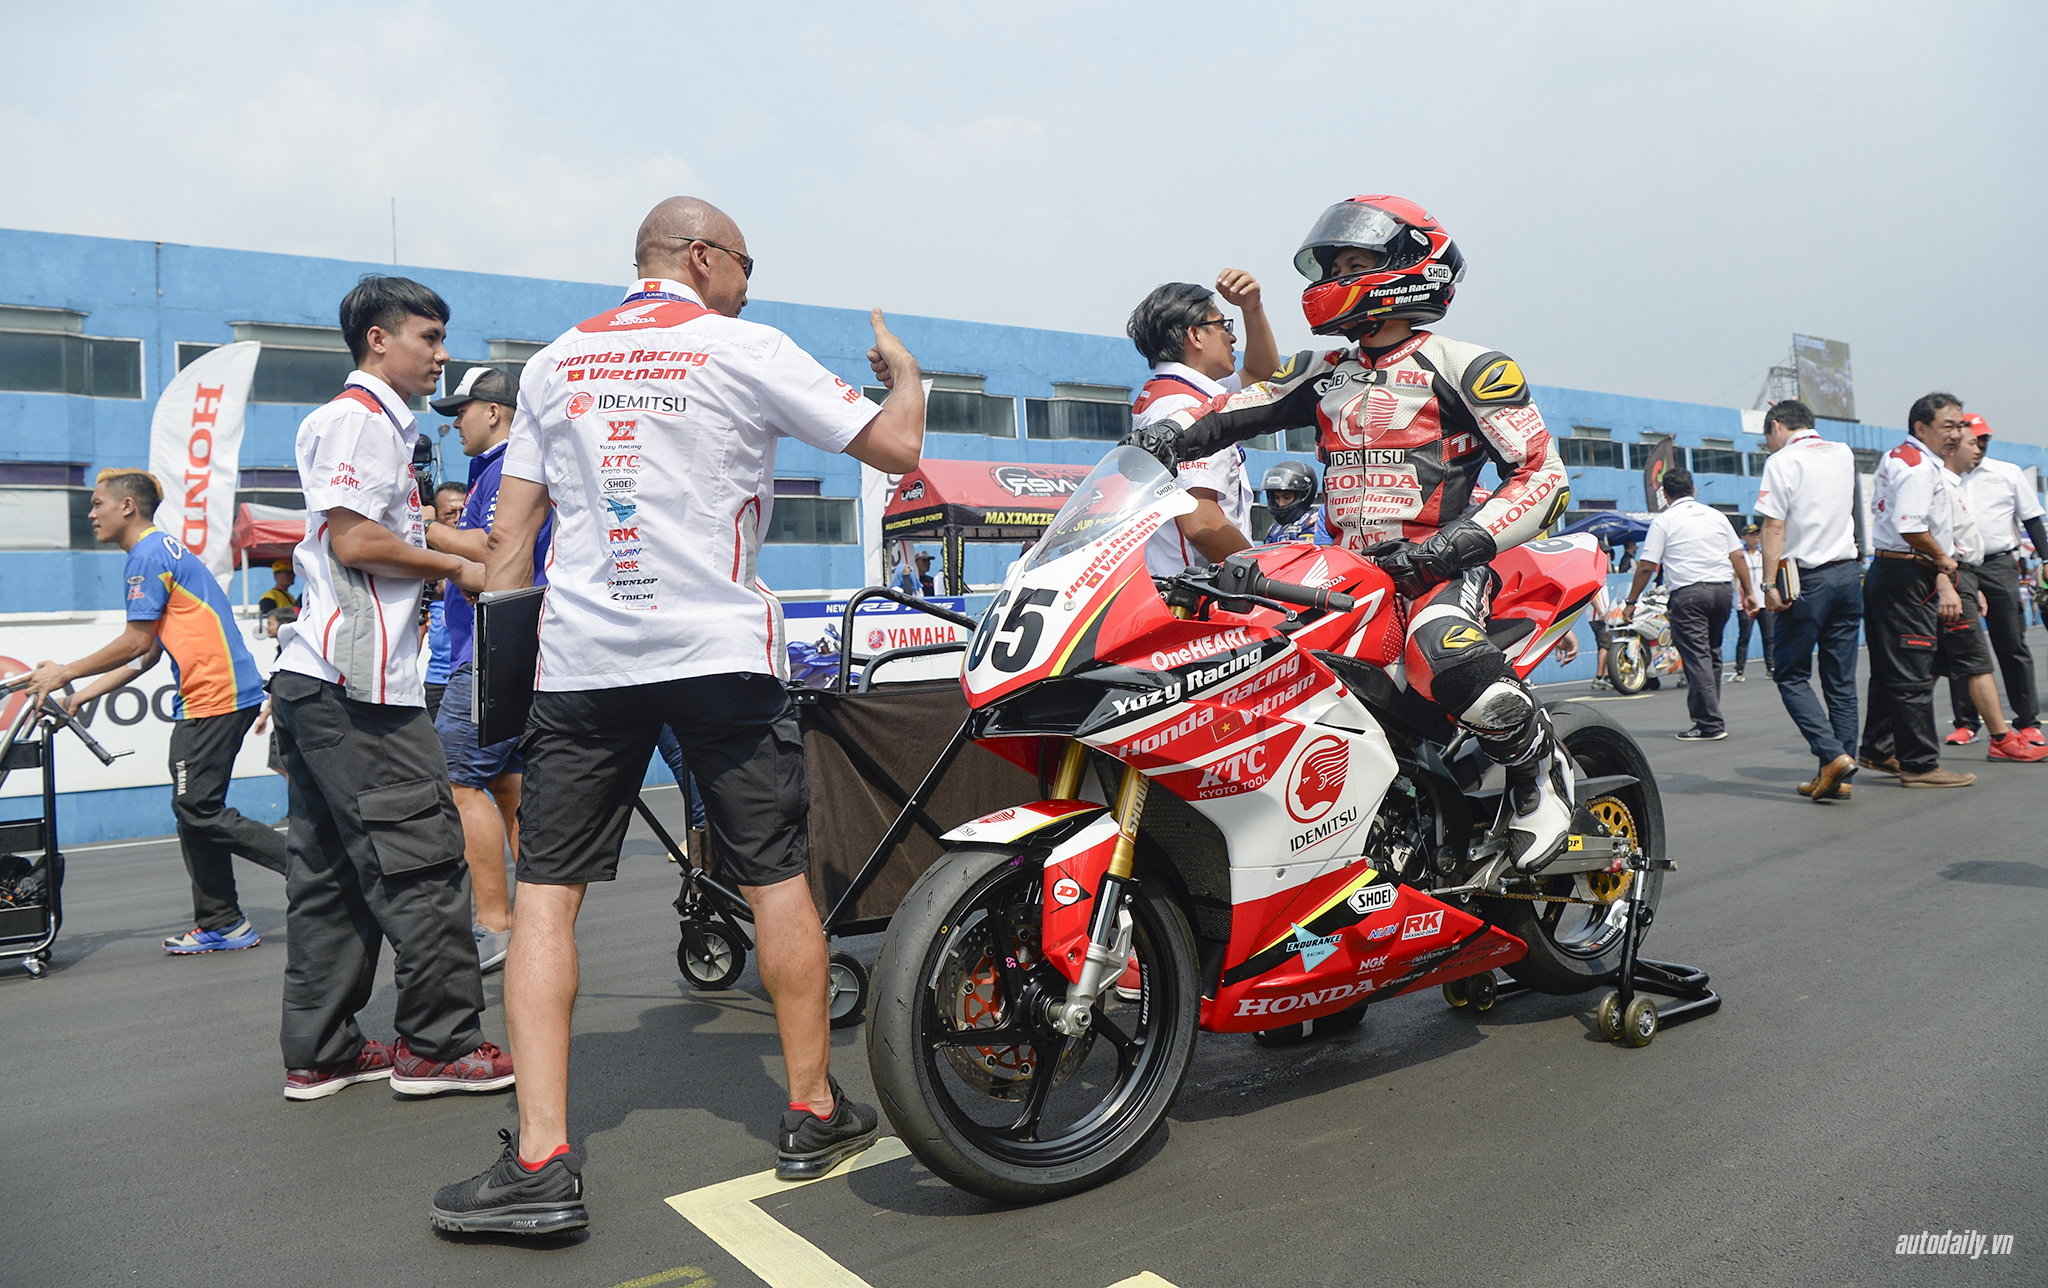 honda-racing-vn-dsc8373-copy.jpg